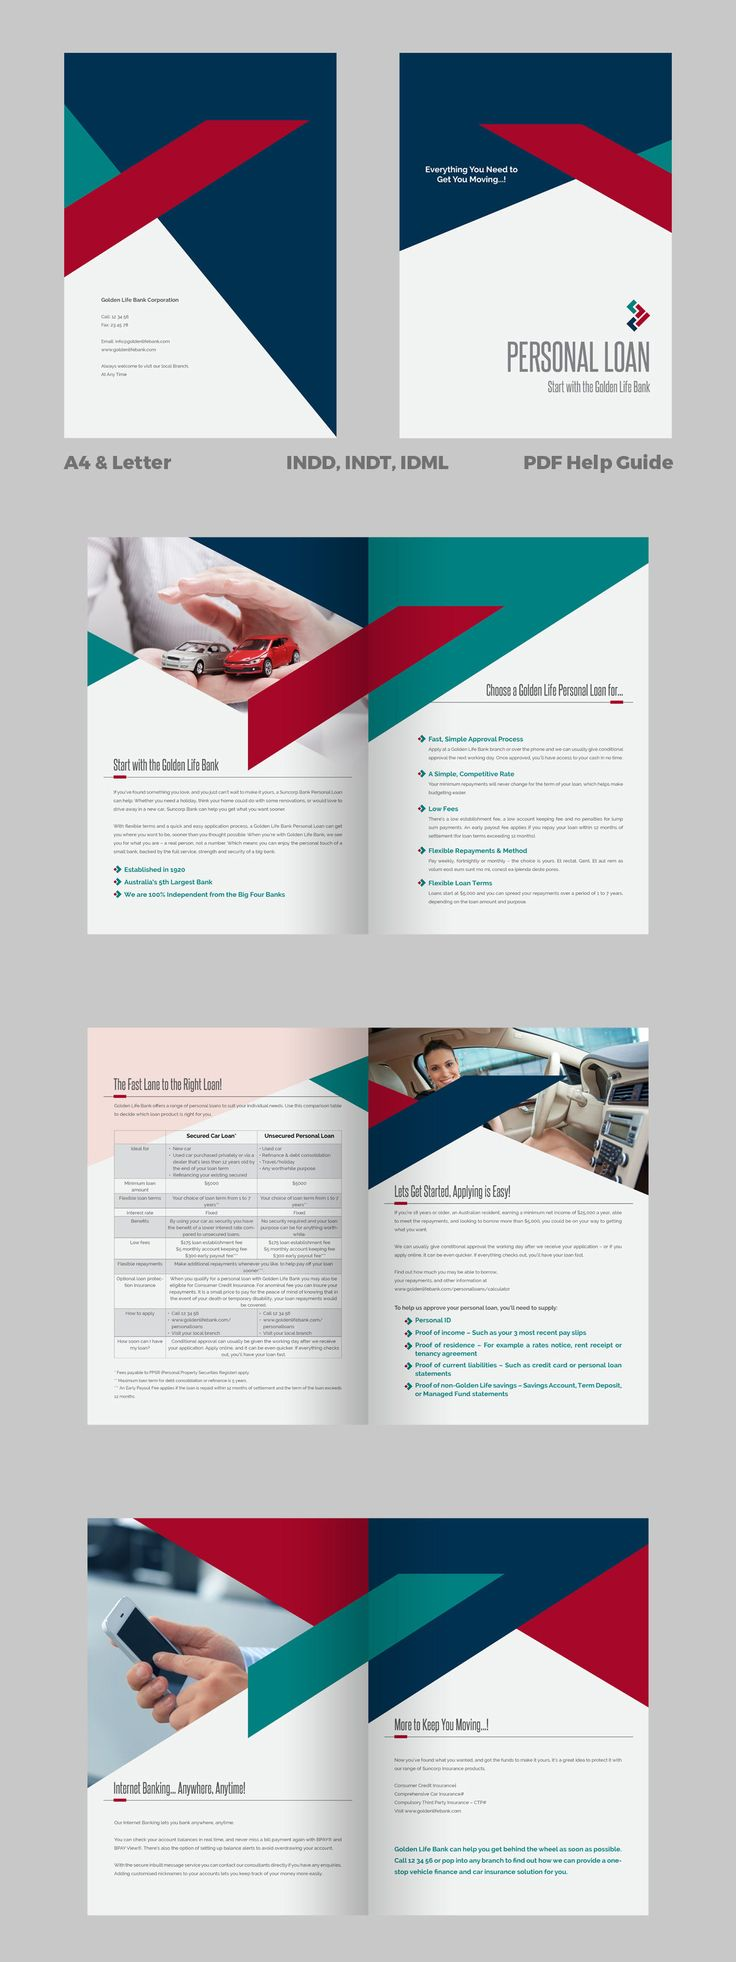 Personal Loan - Banking Brochure Template InDesign INDD